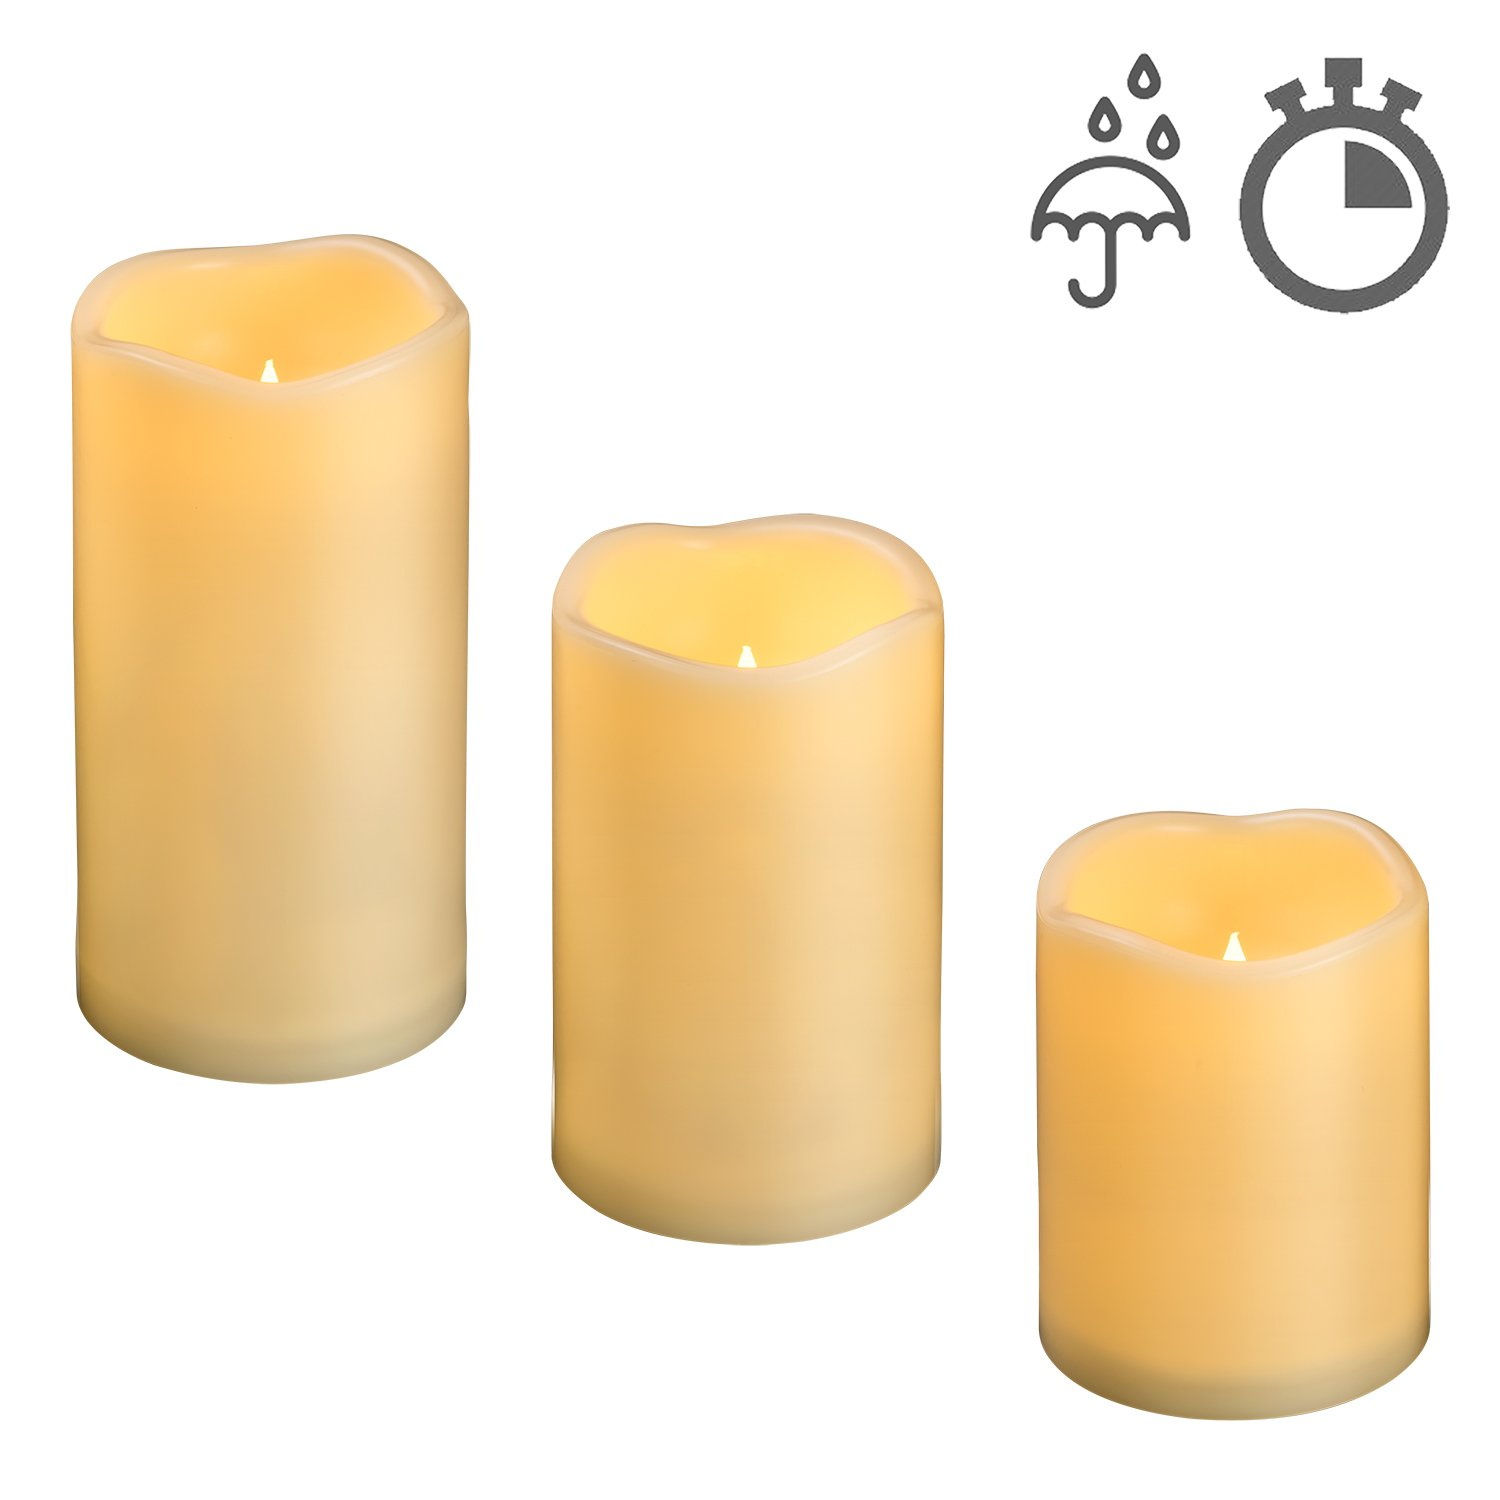 4''5''6'' Outdoor Indoor Waterproof LED Flameless Flickering Pillar Candles with Timer / Large Battery Operated Electric Candles Set for Outdoor Lantern Decorative Long Lasting 1500 Hours